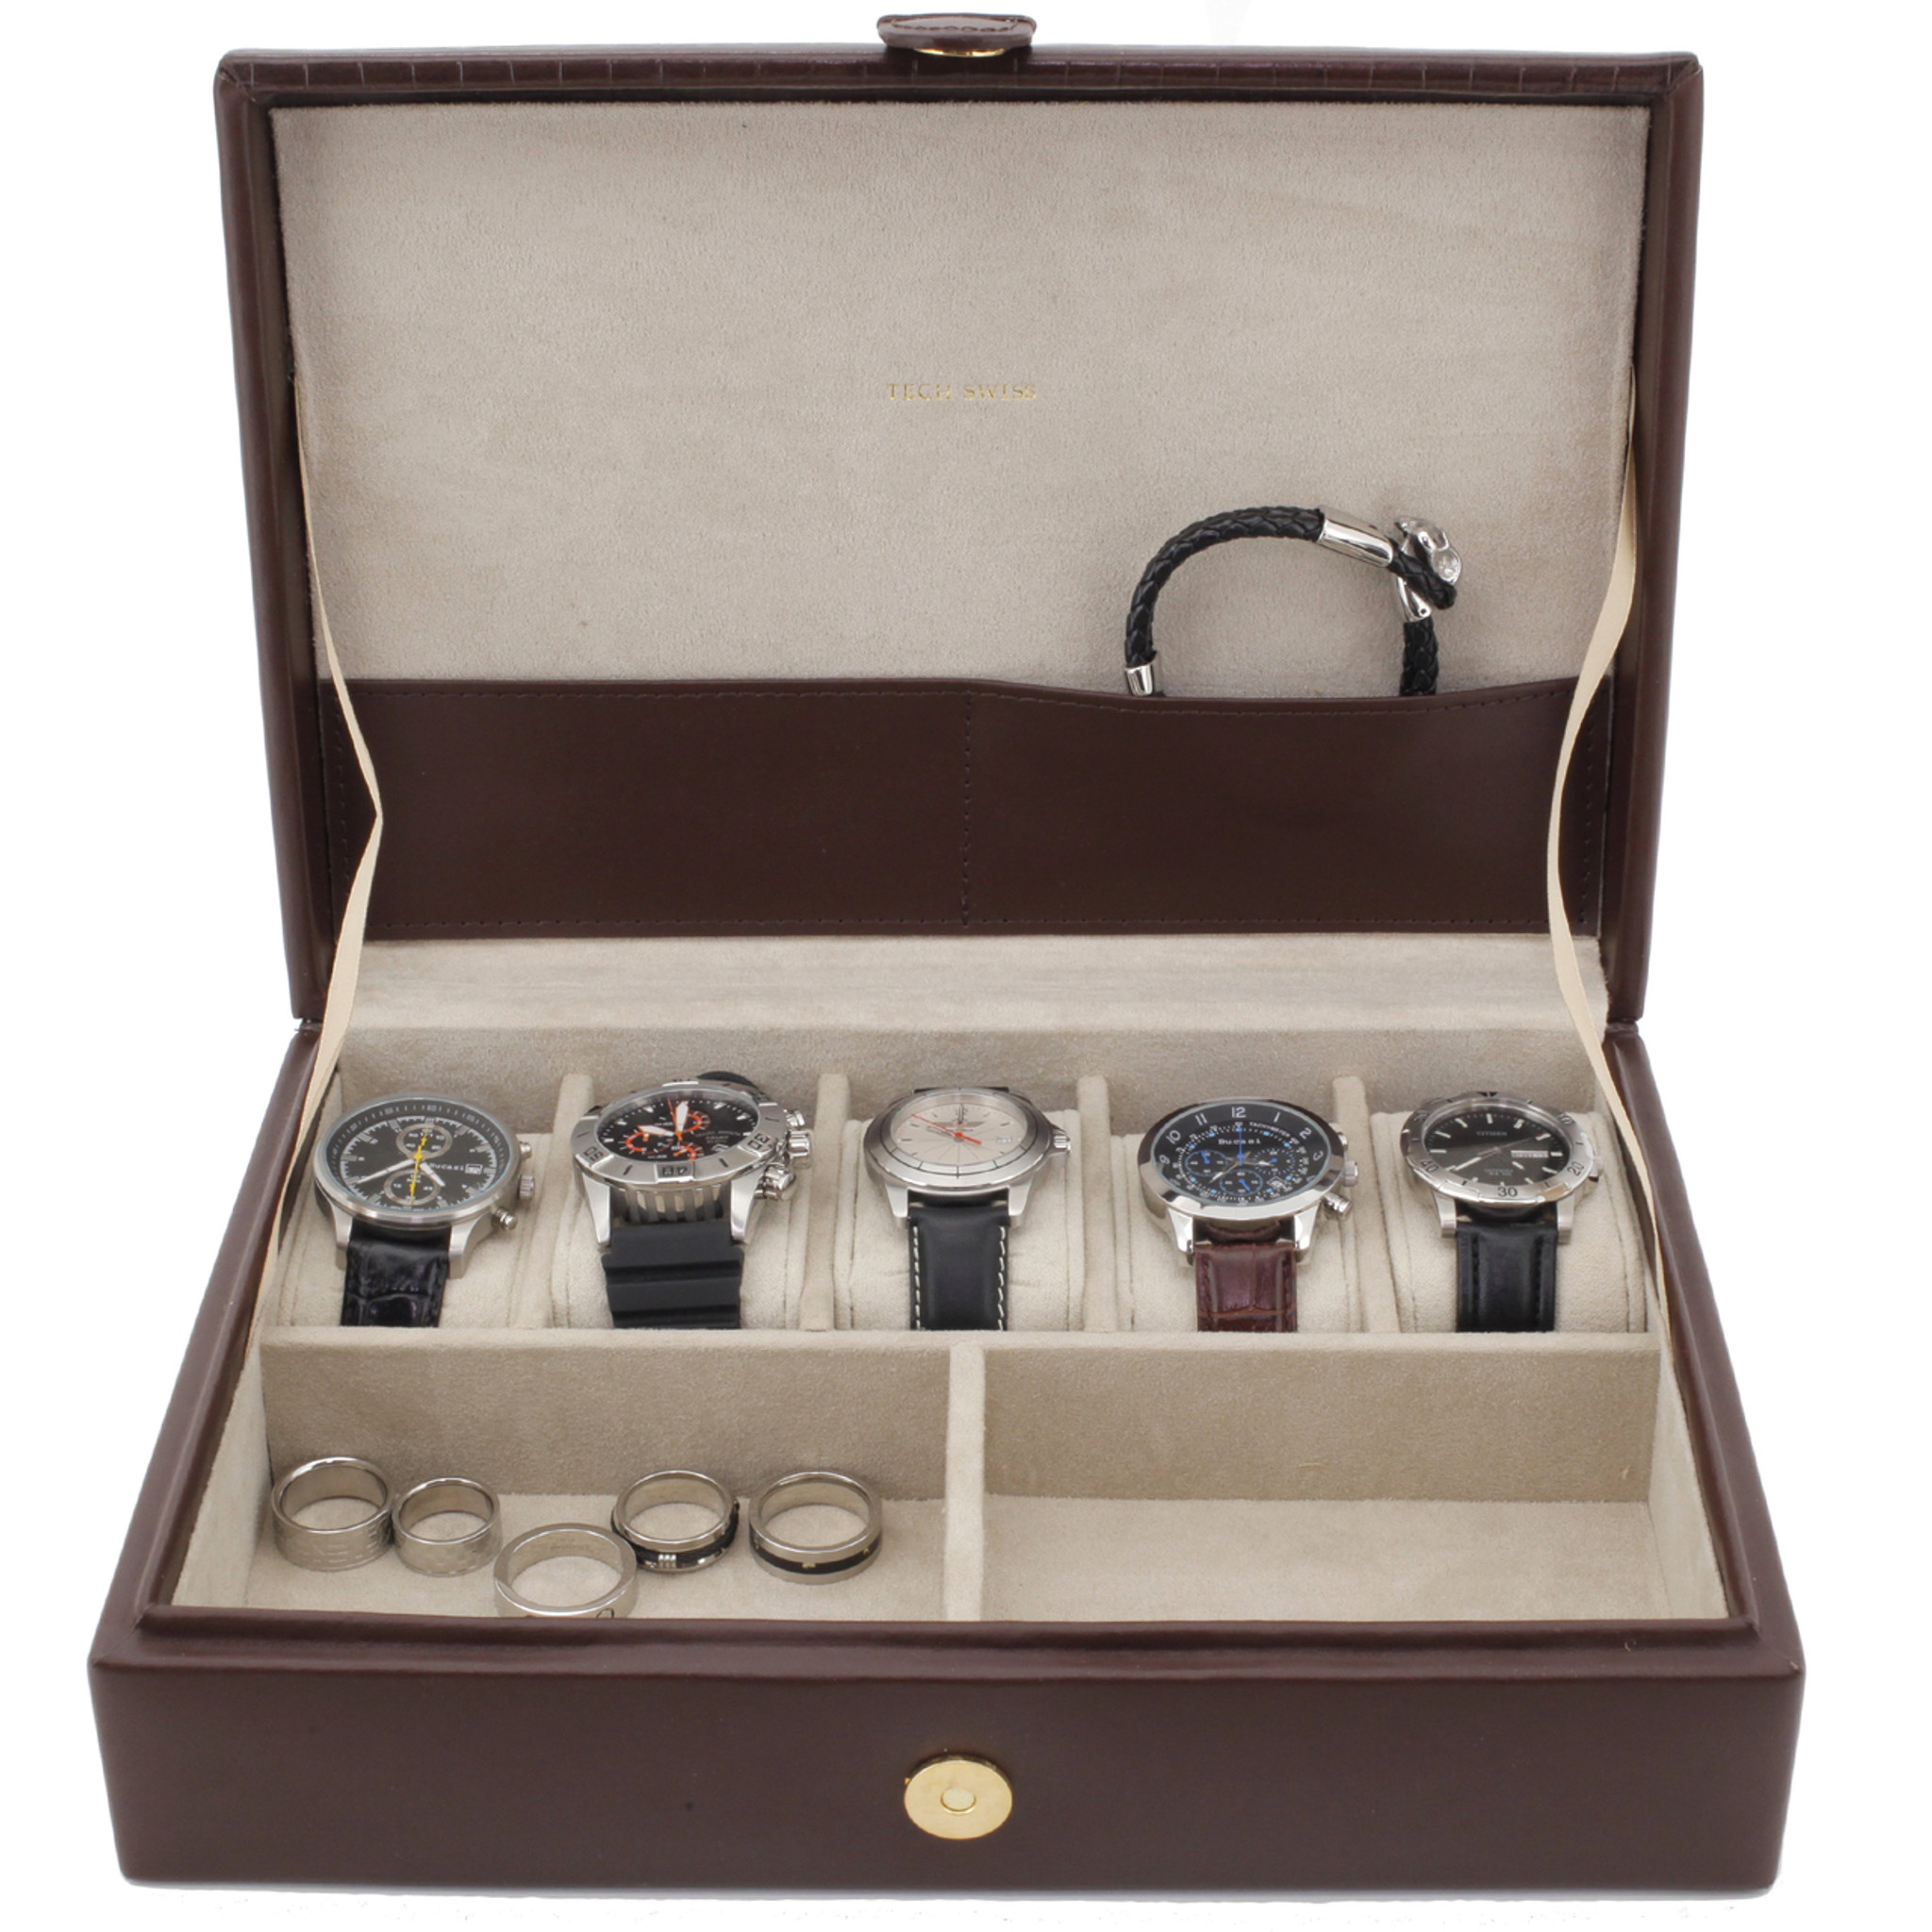 Watches and Jewelry Box Leather Storage Case in Brown